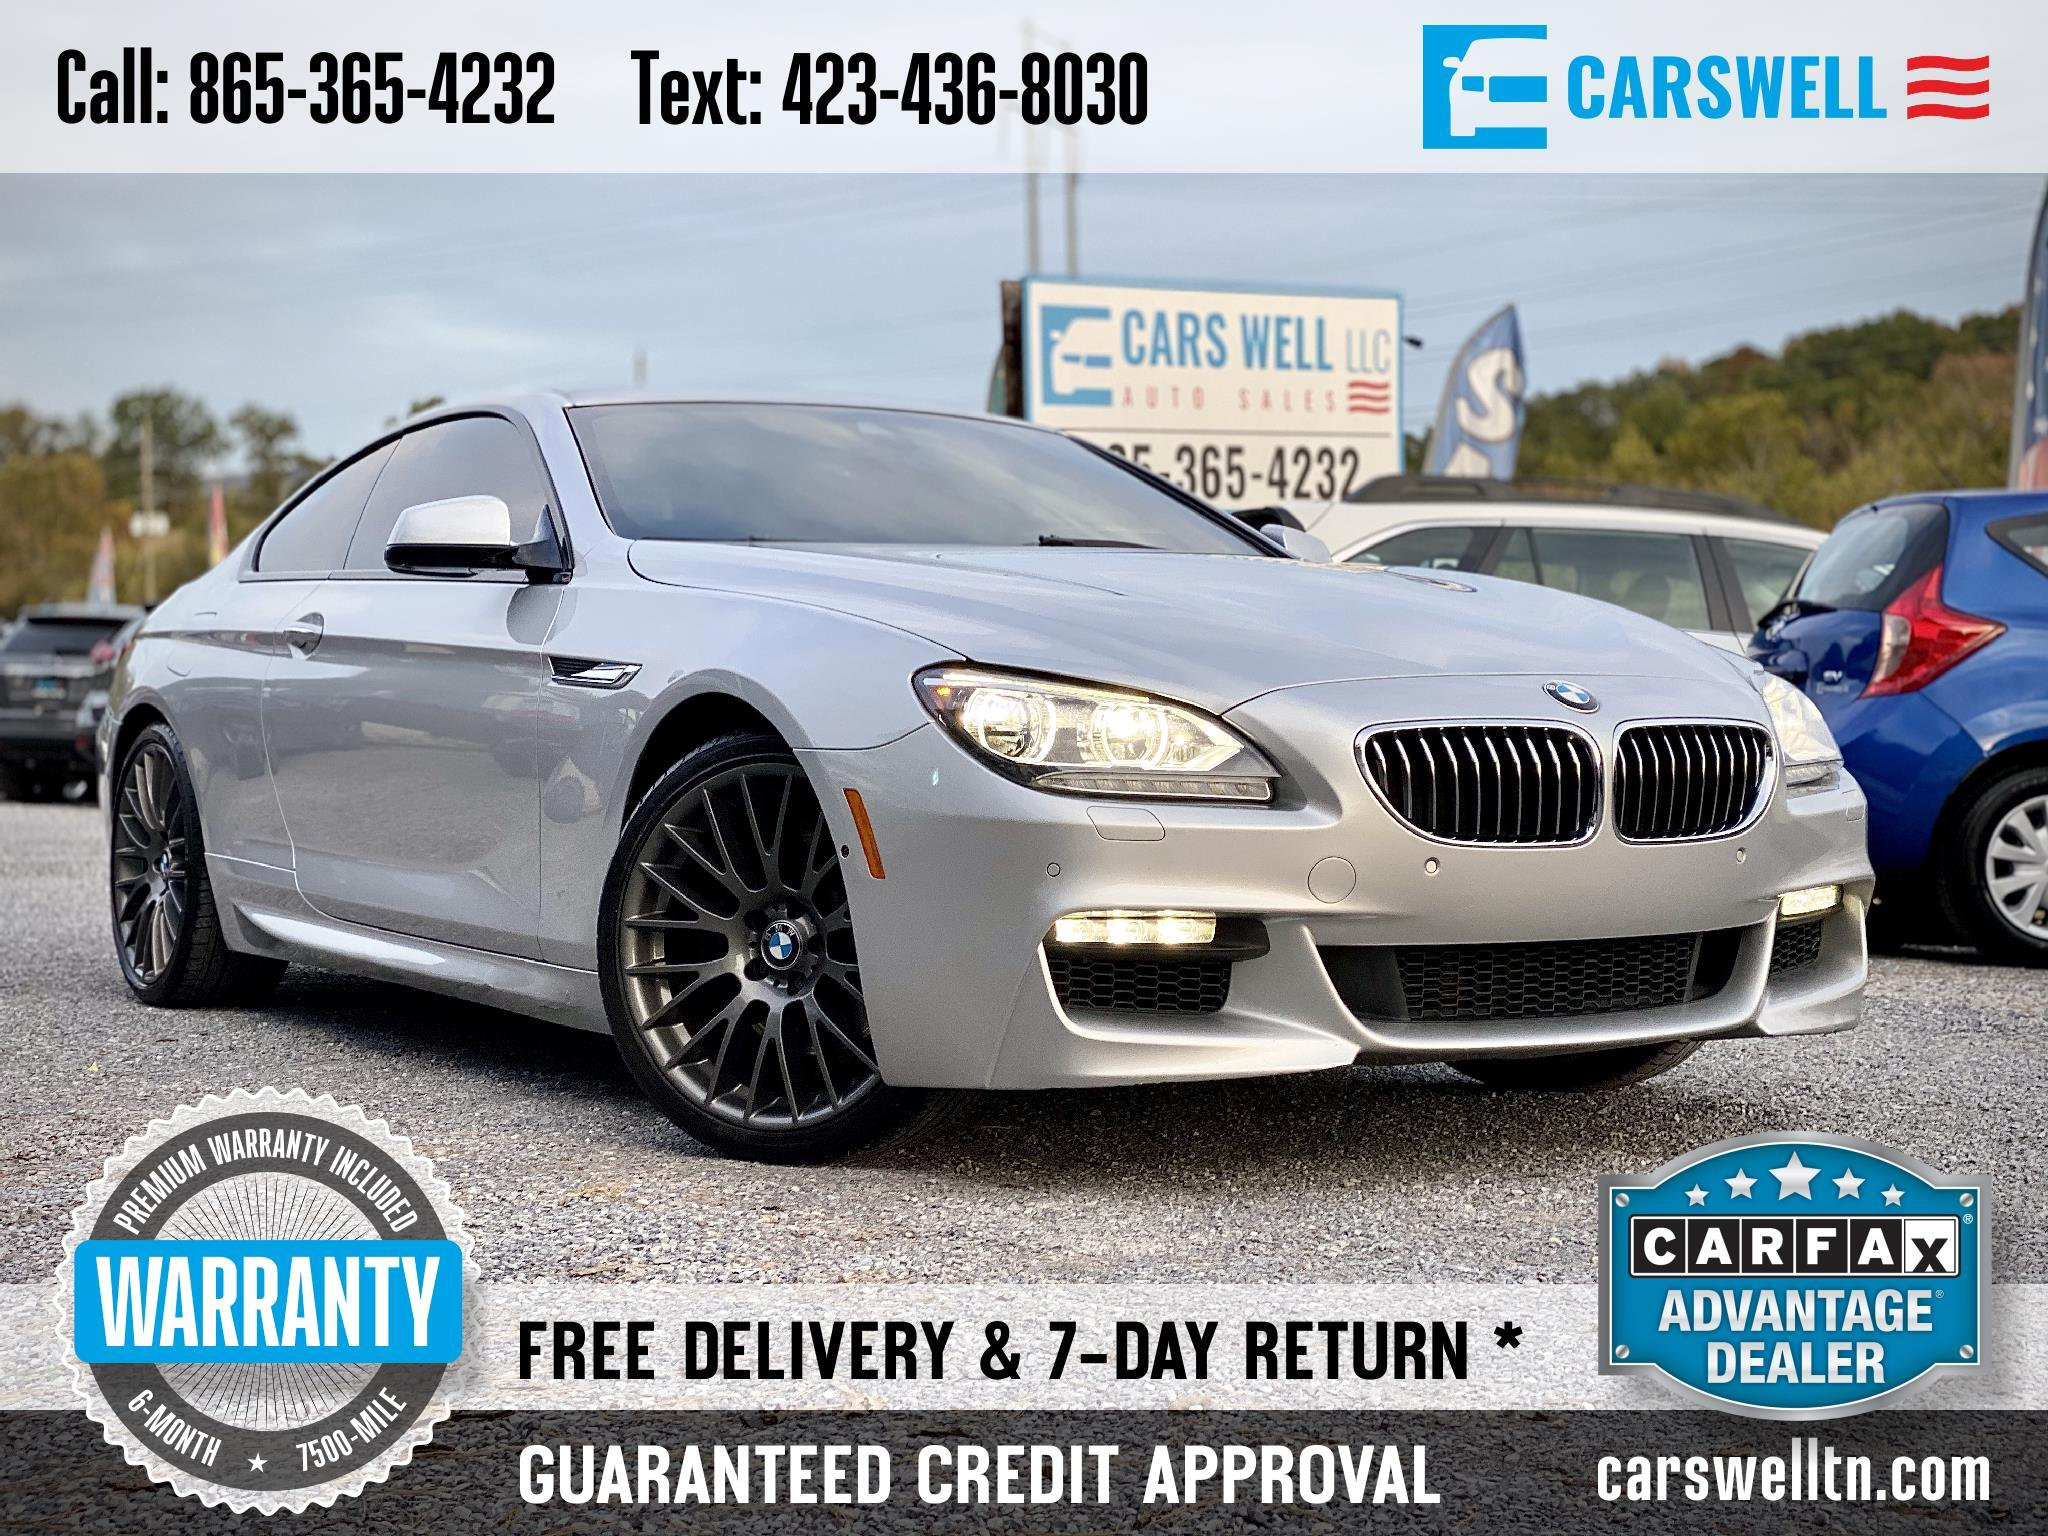 2013 BMW 6 Series 2dr Cpe 640i